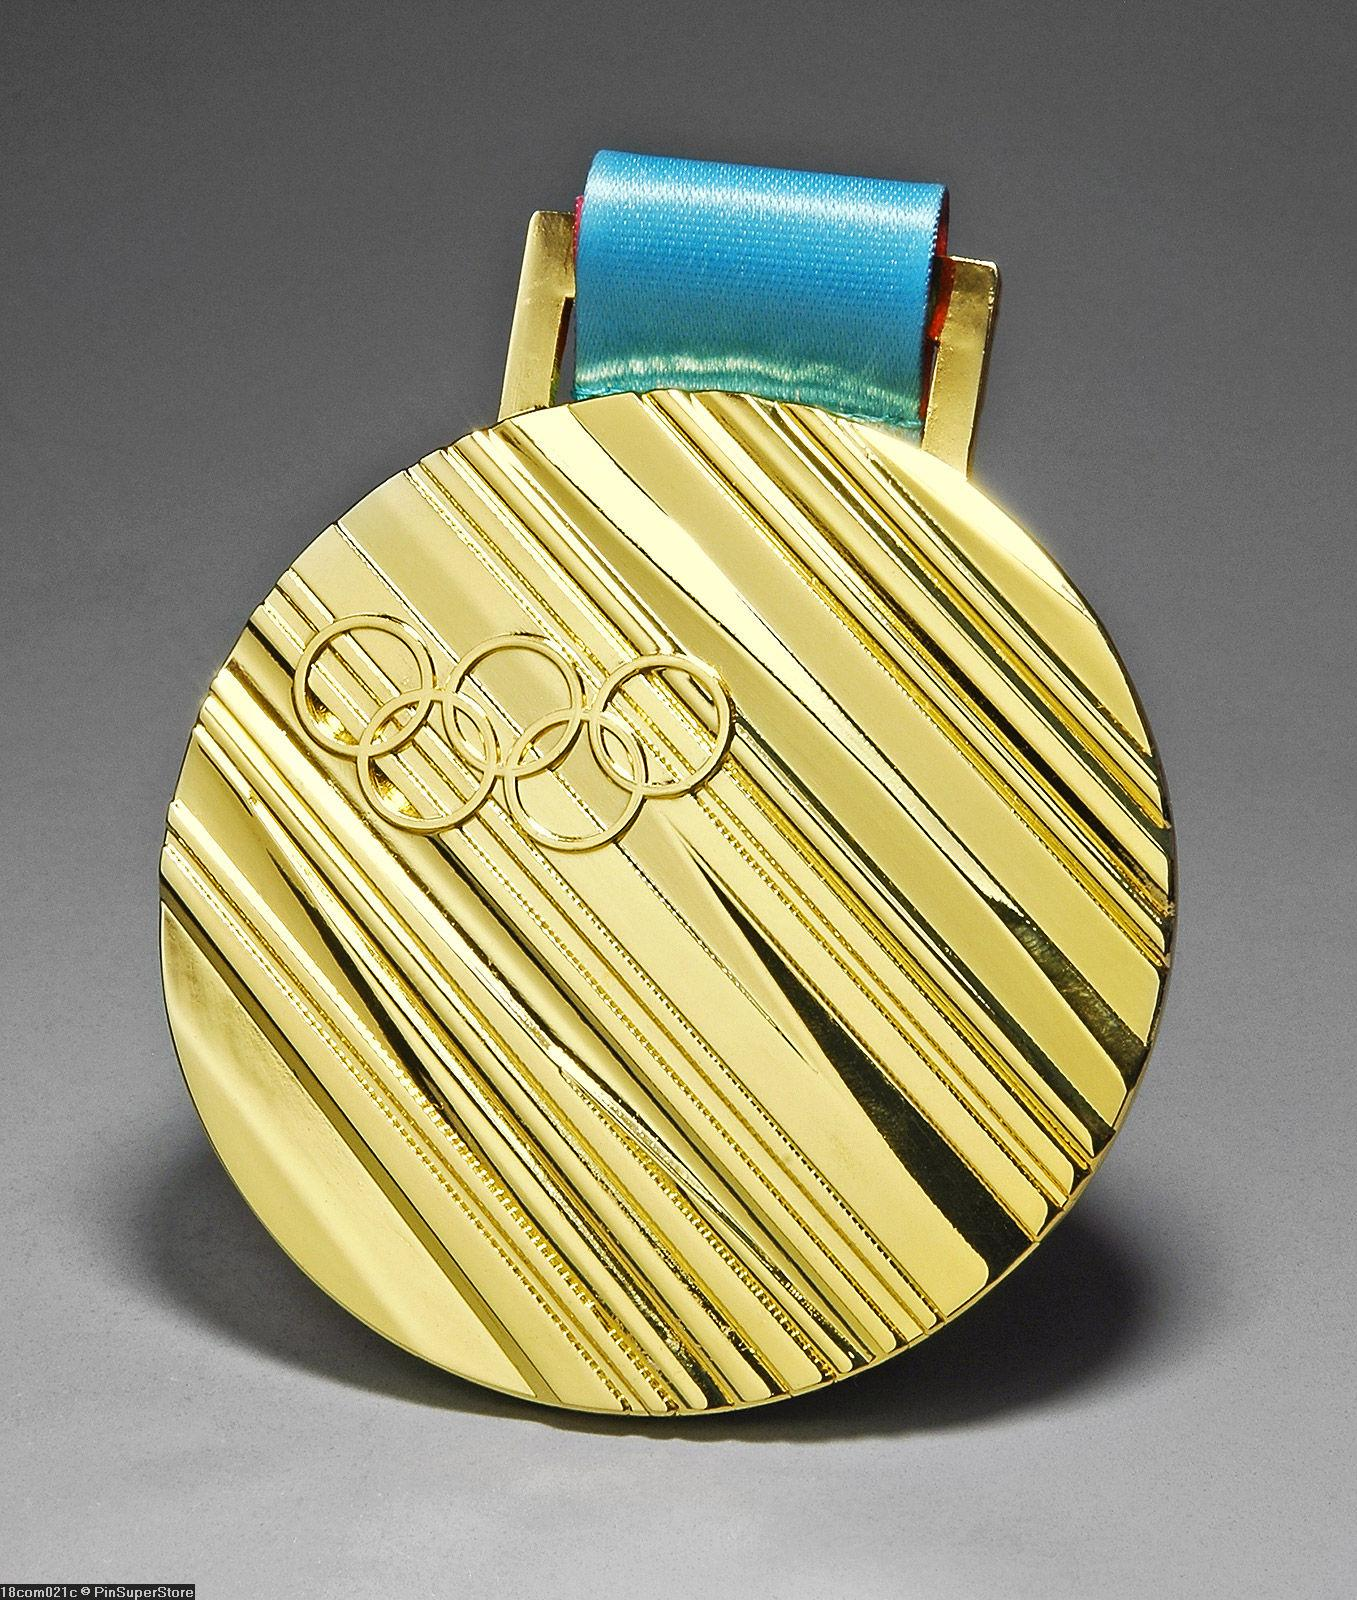 2018 PYEONGCHANG SOUTH KOREA OLYMPIC SOUVENIR REPLICA GOLD ...